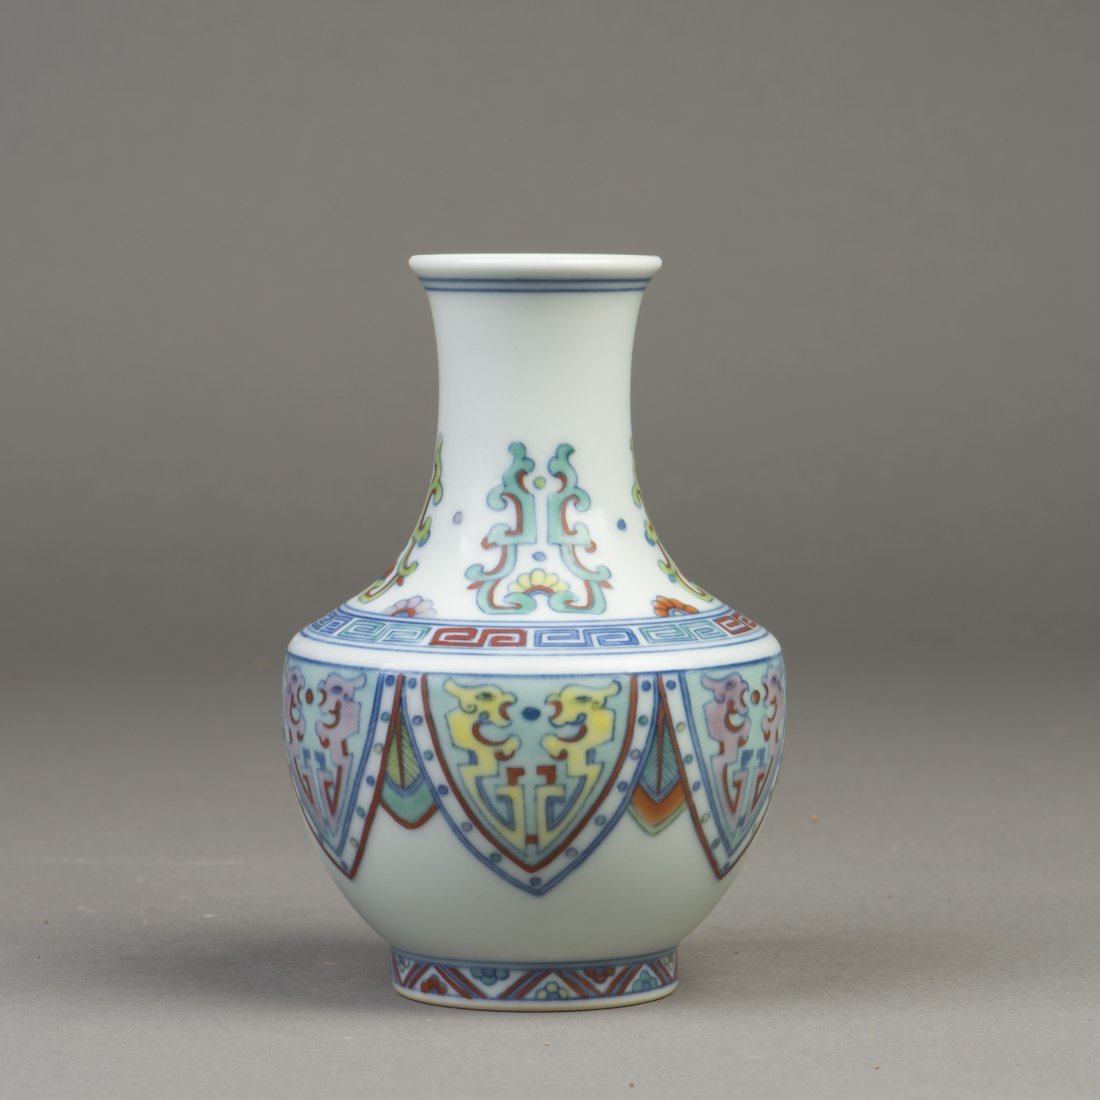 A CHINESE ARCHIASTIC PORCELAIN VASE